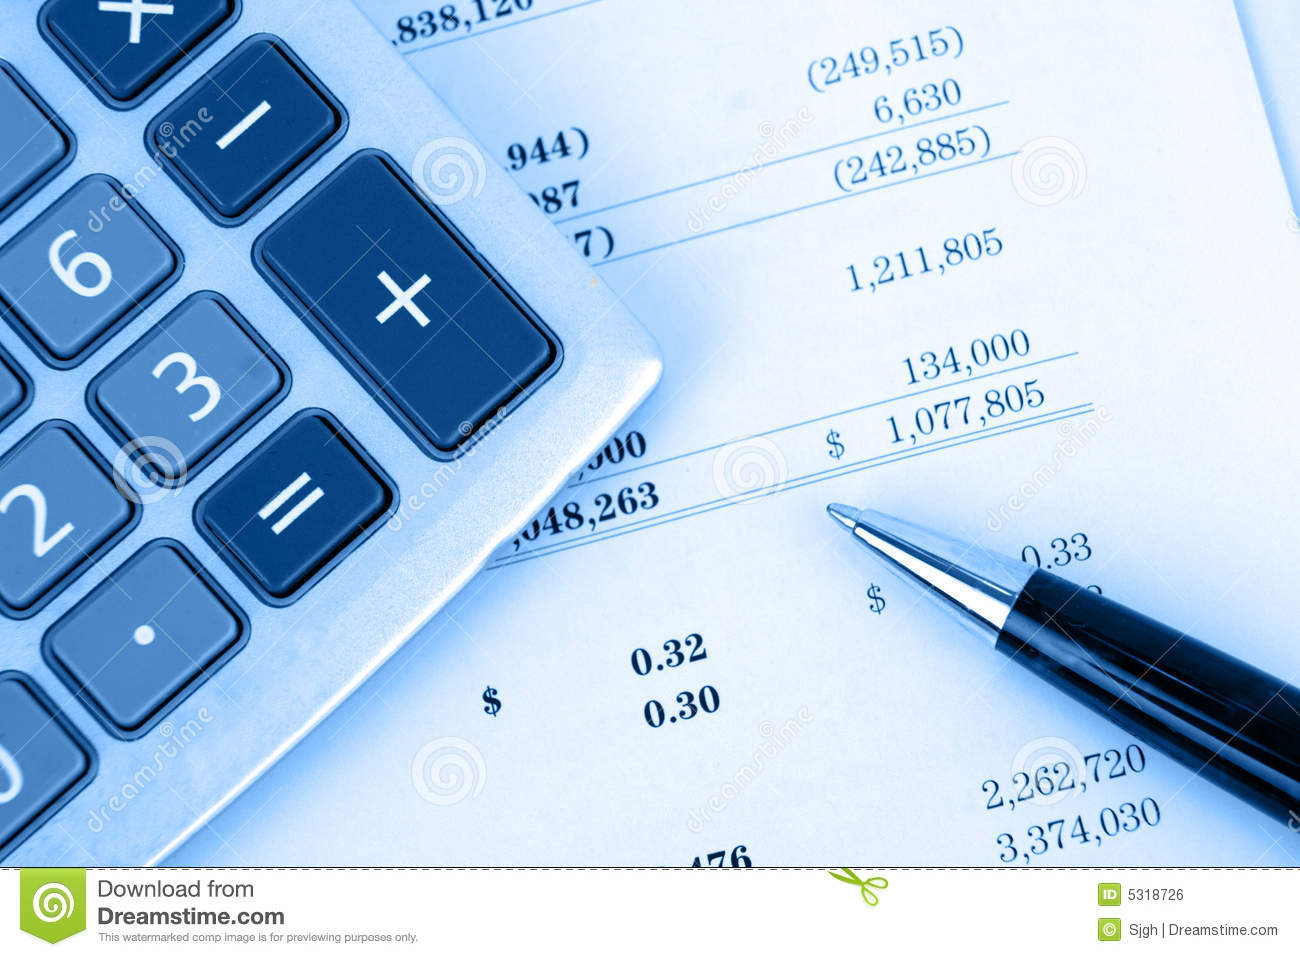 calculator-financial-report-blue-background-5318726.jpg